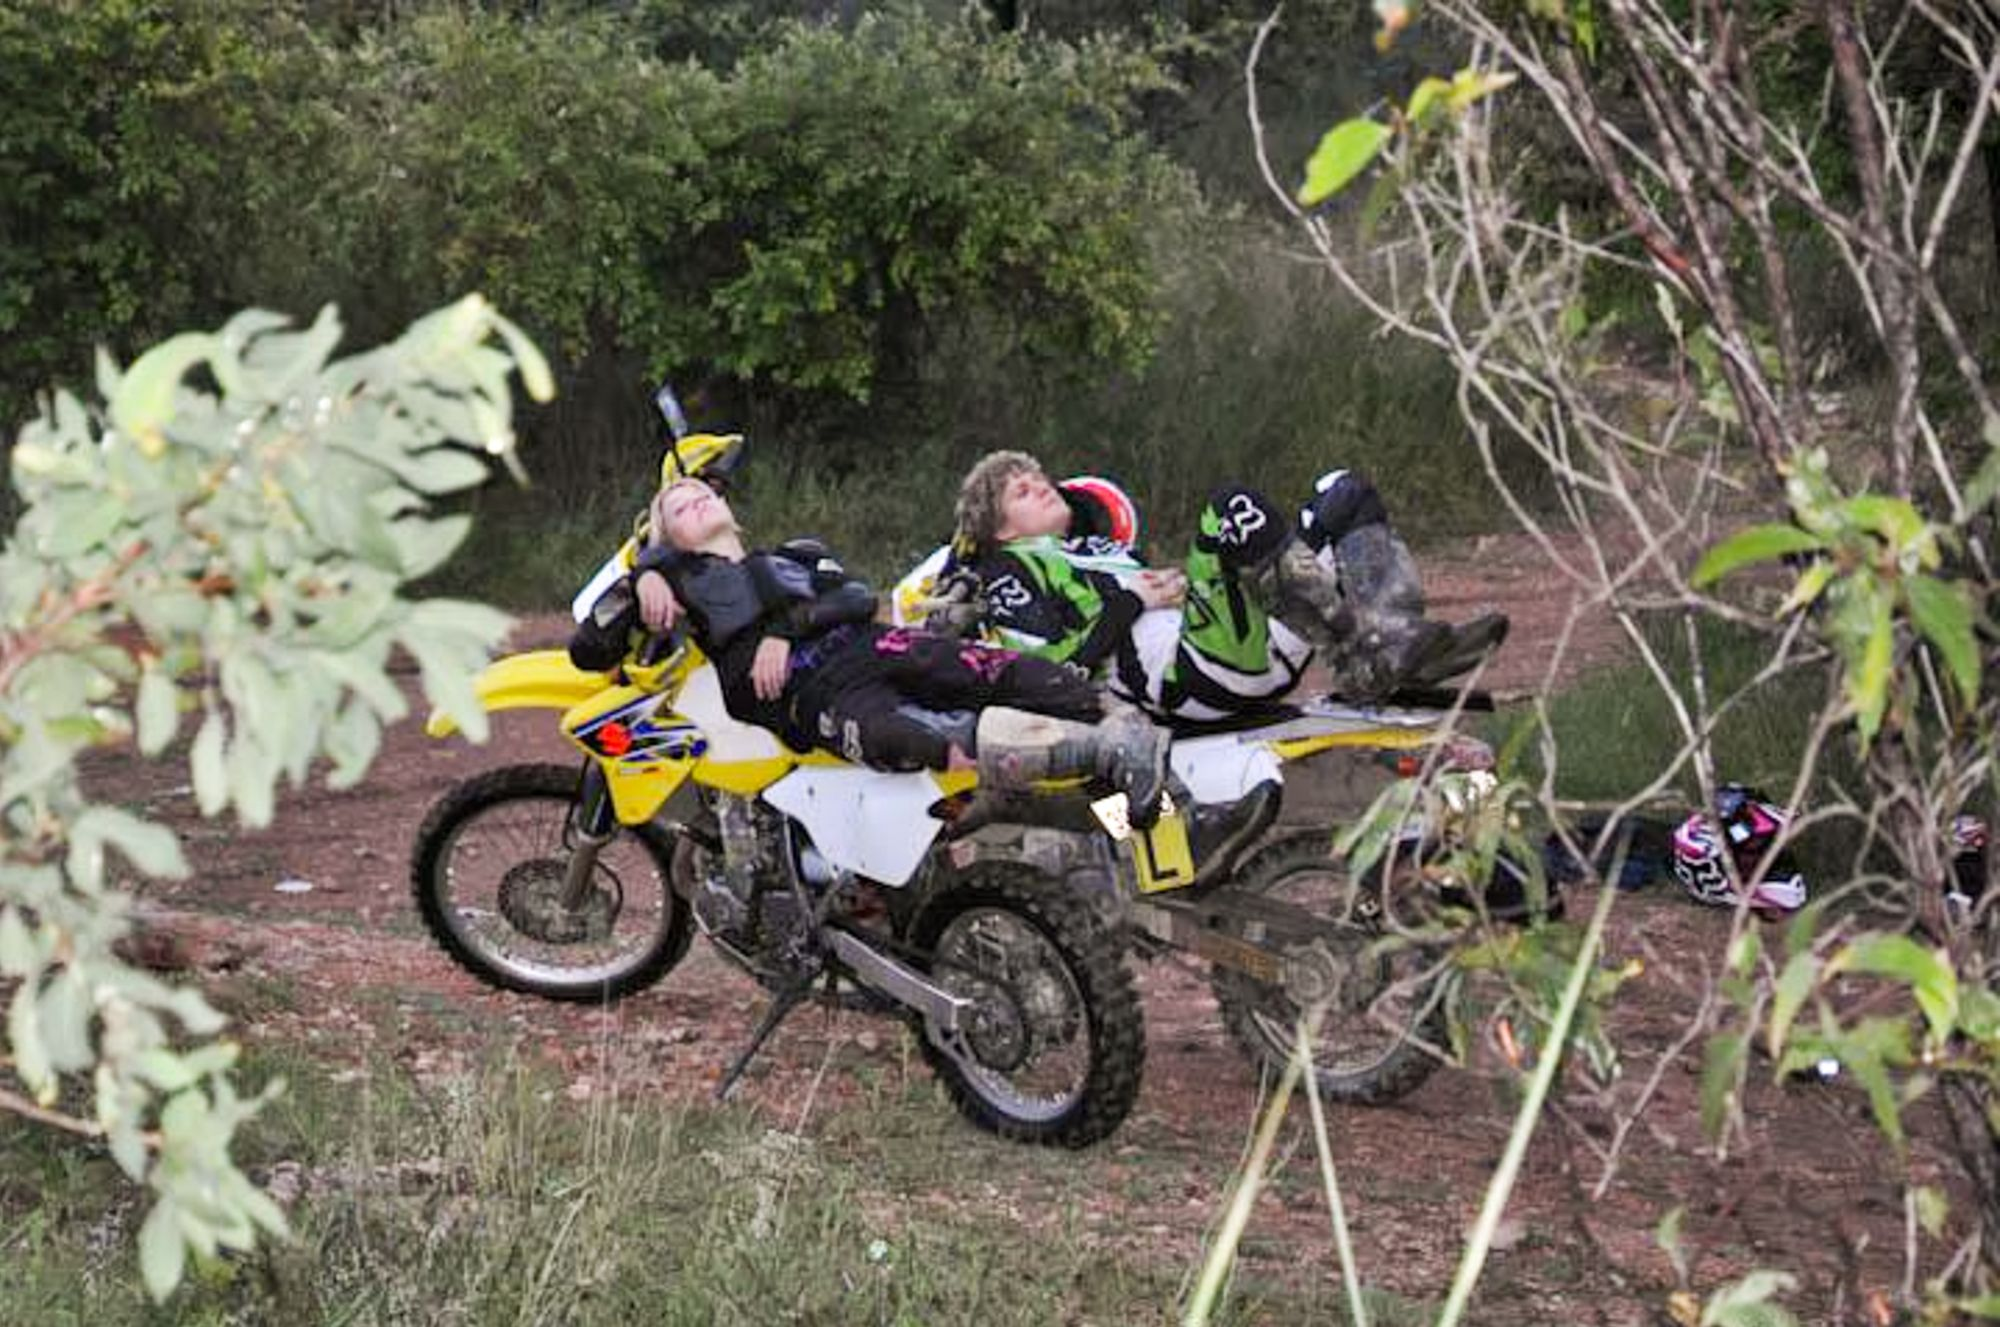 napping on dirtbikes